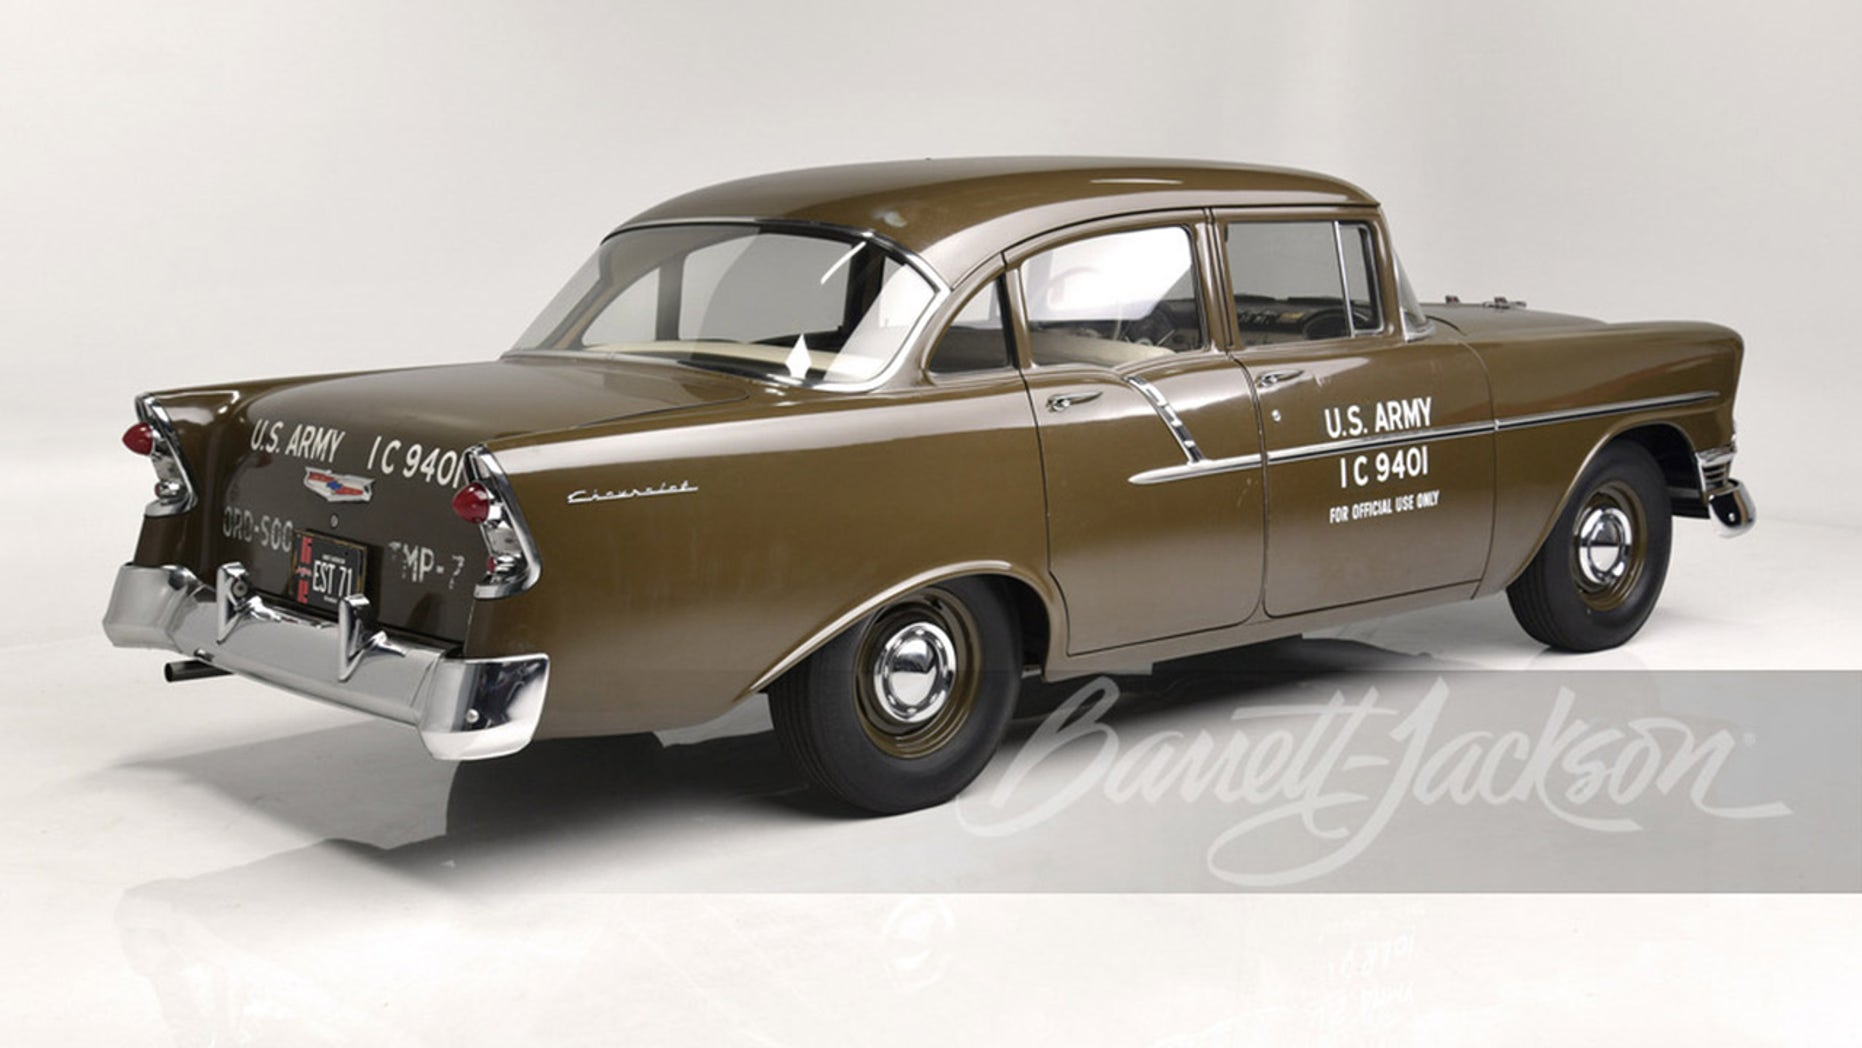 US Army 1956 Chevy